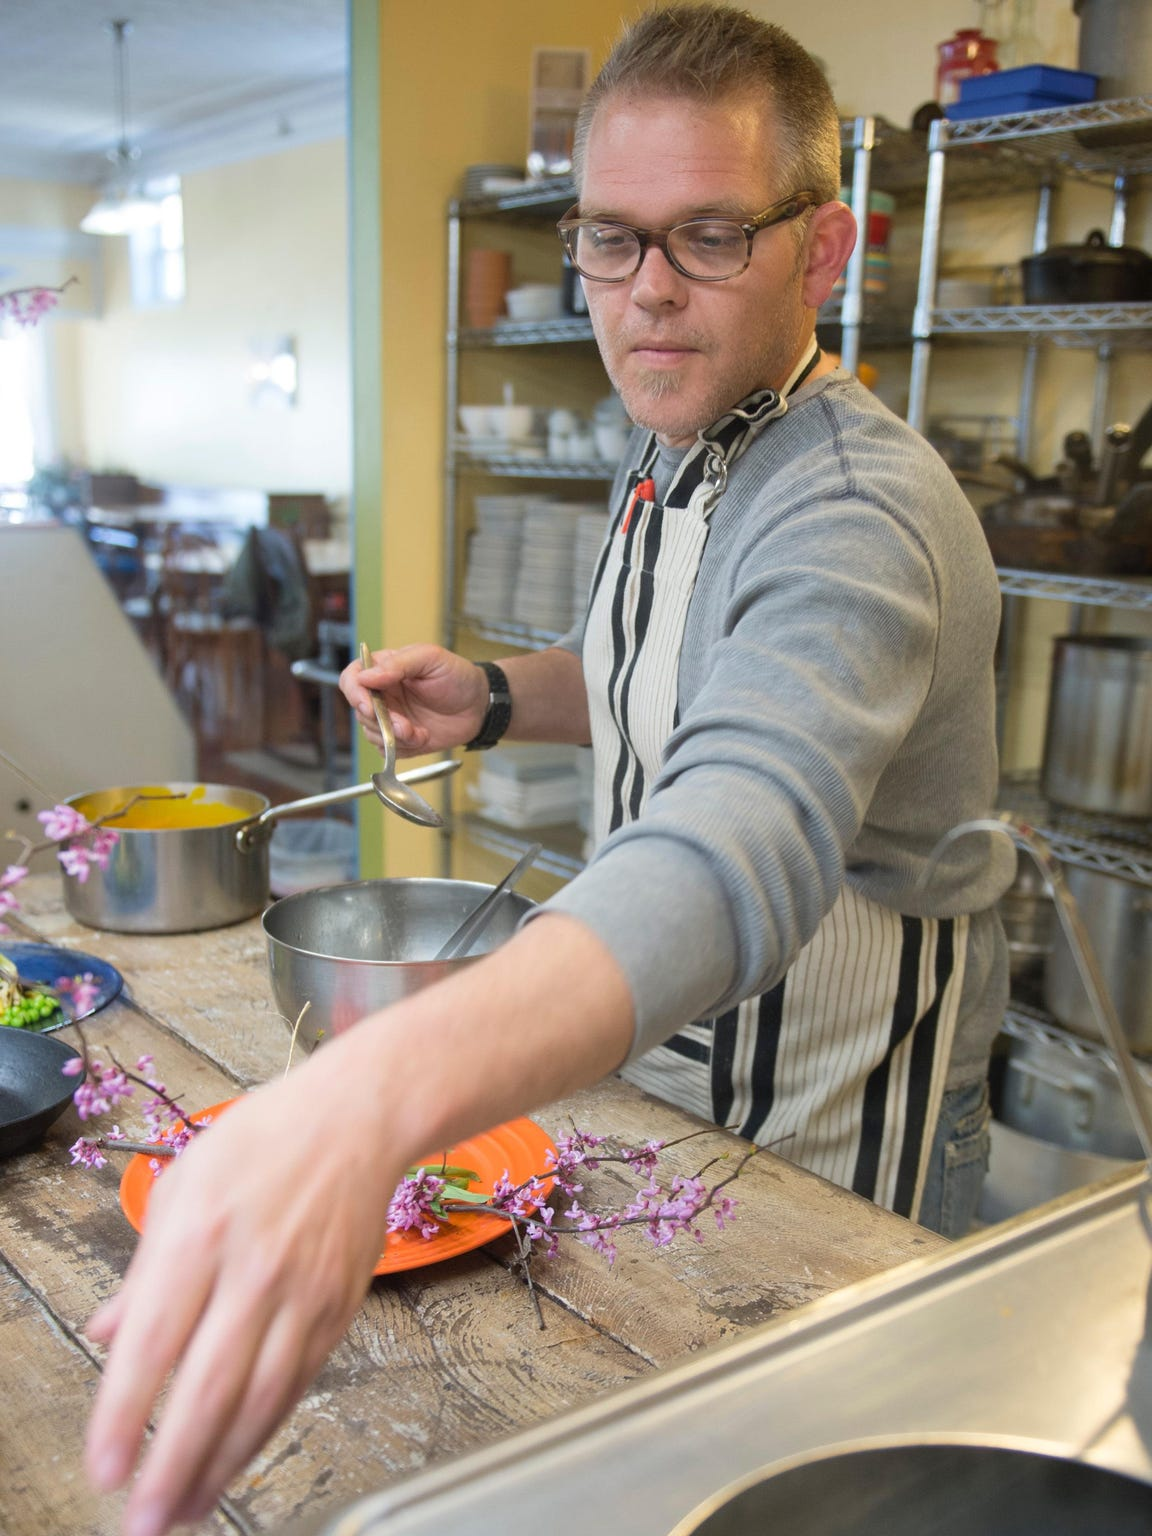 Mike Lund of LUNdCH in Staunton prepares a dish of